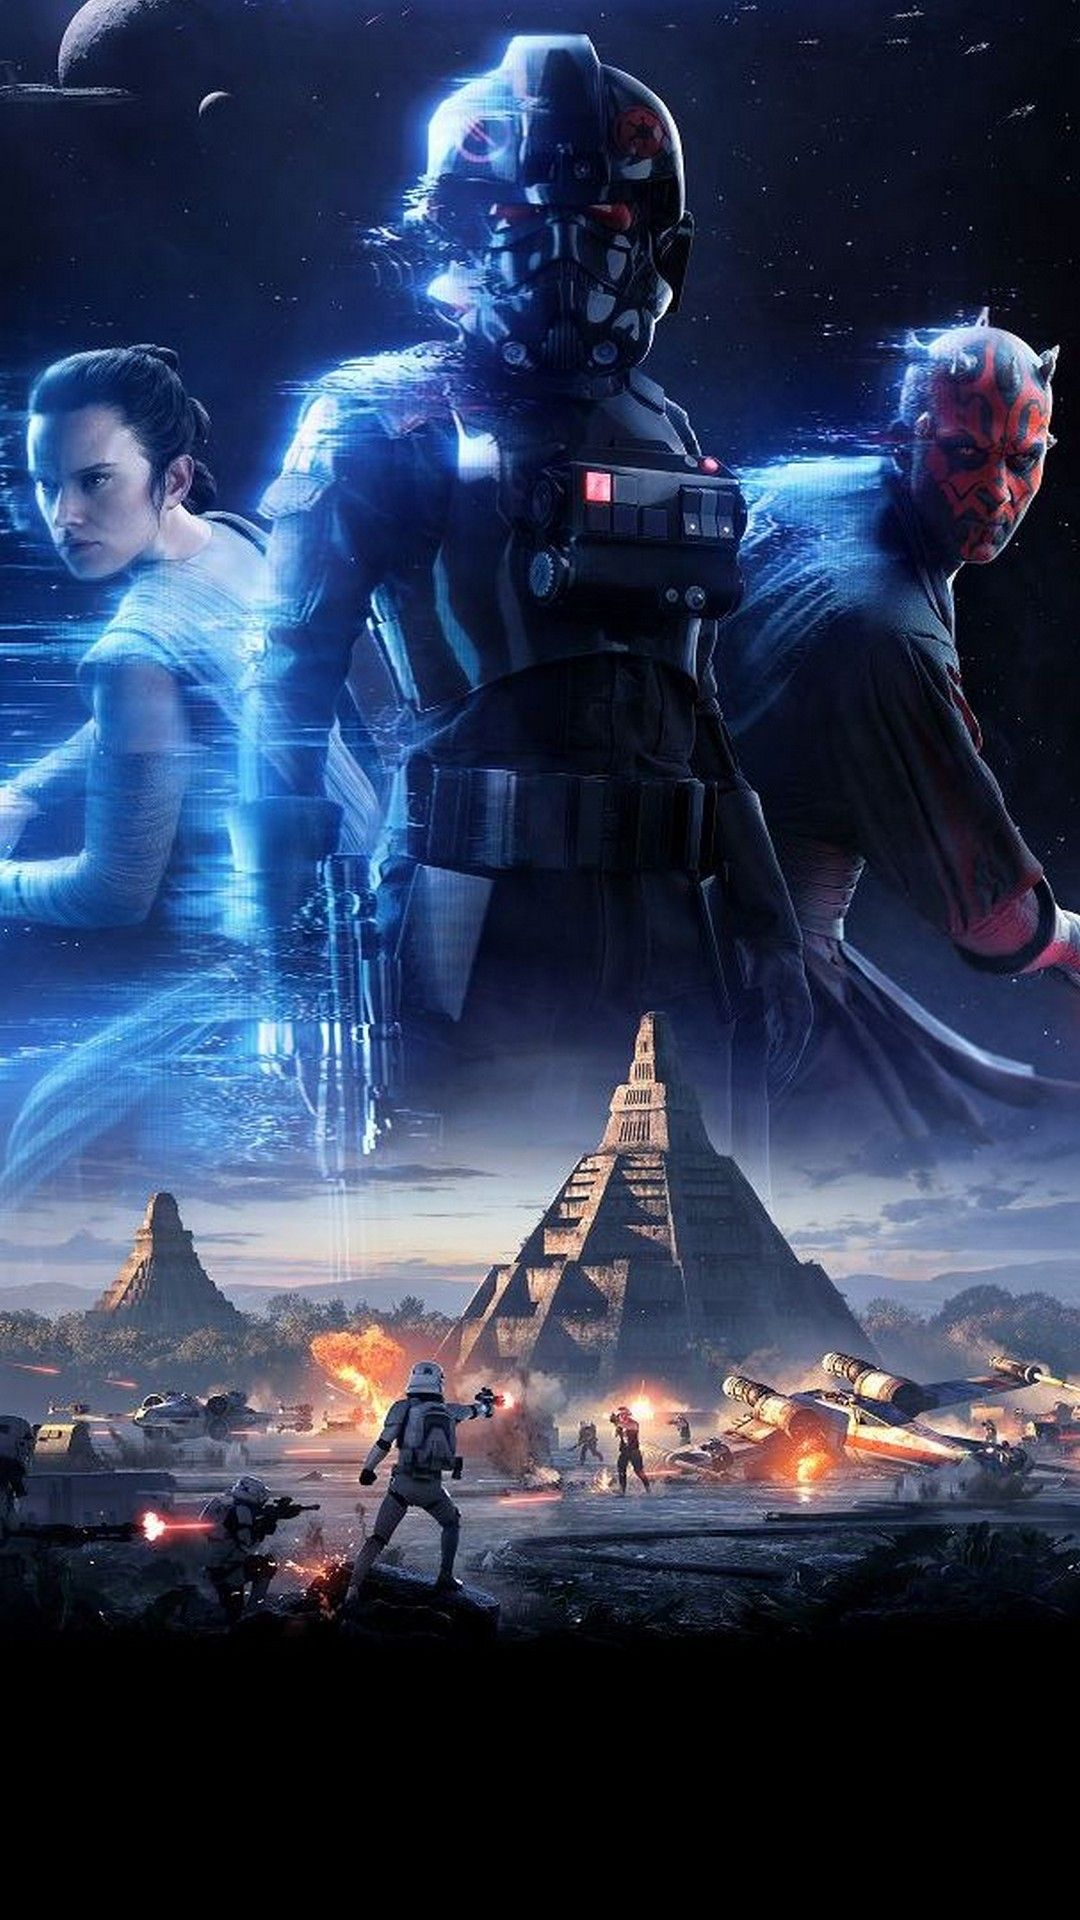 Star Wars Battlefront 2 Games Iphone Wallpaper Star Wars Games